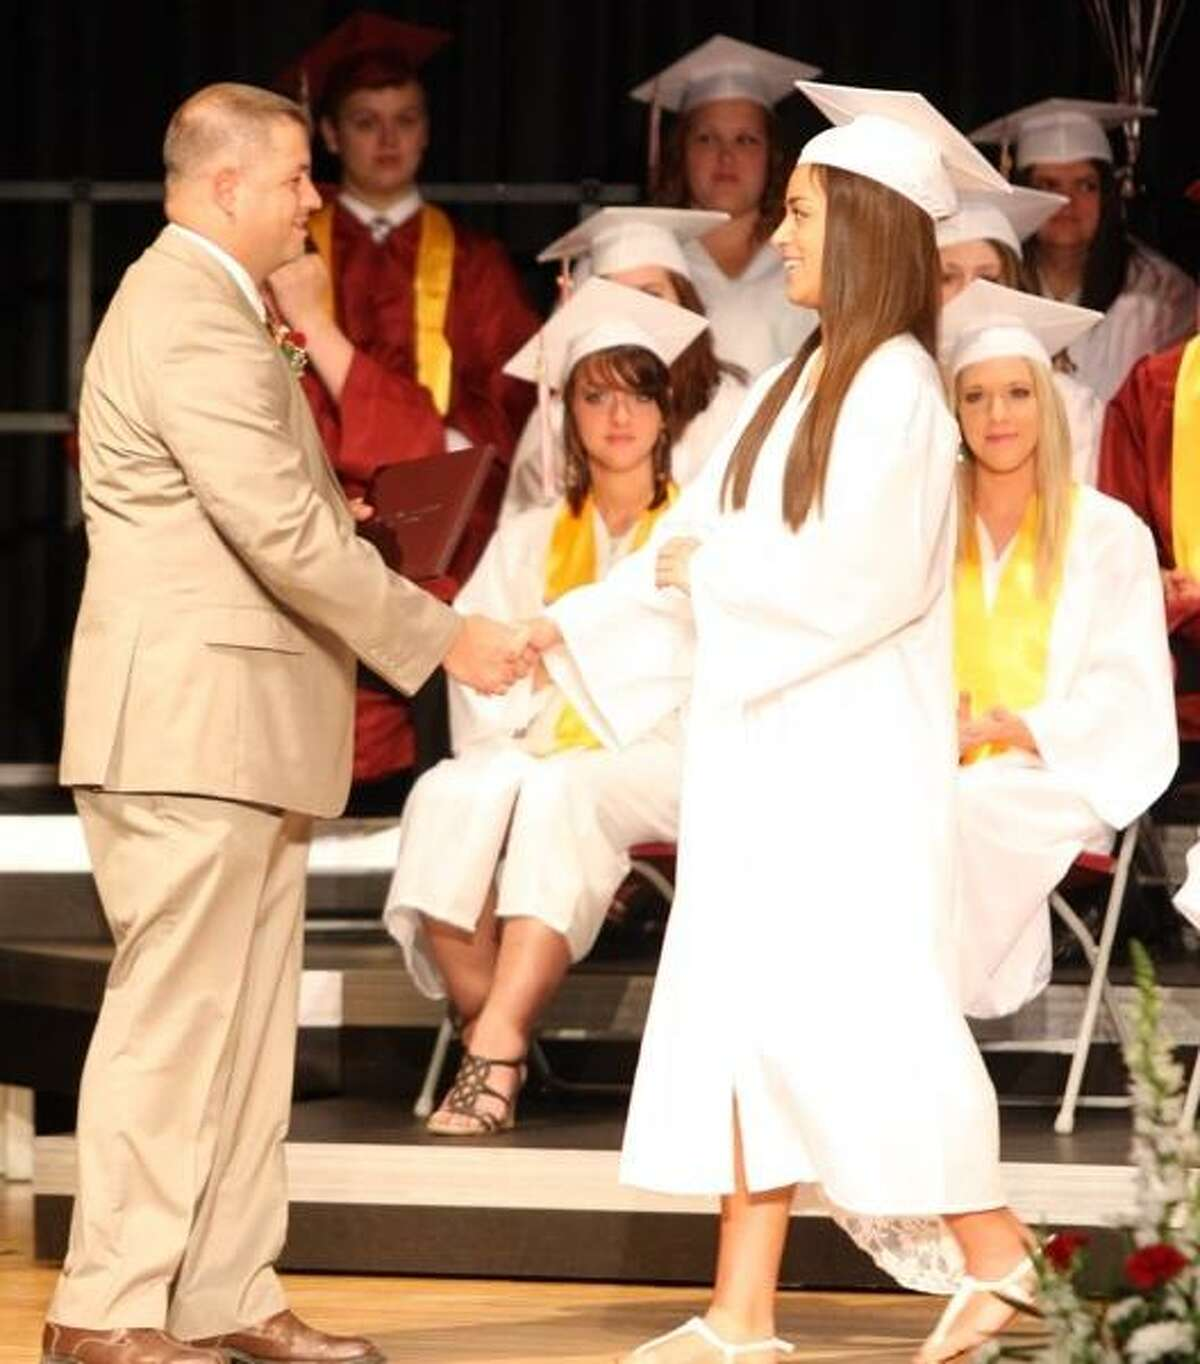 JOHN HAEGER @ONEIDAPHOTO ON TWITTER/ONEIDA DAILY DISPATCH Mariah Beauvais shakes the hand of Jacob Byron Board of Education President after receiving her diploma during 85th commencements at SVCS on Friday, June 21, 2013 in Munnsville.